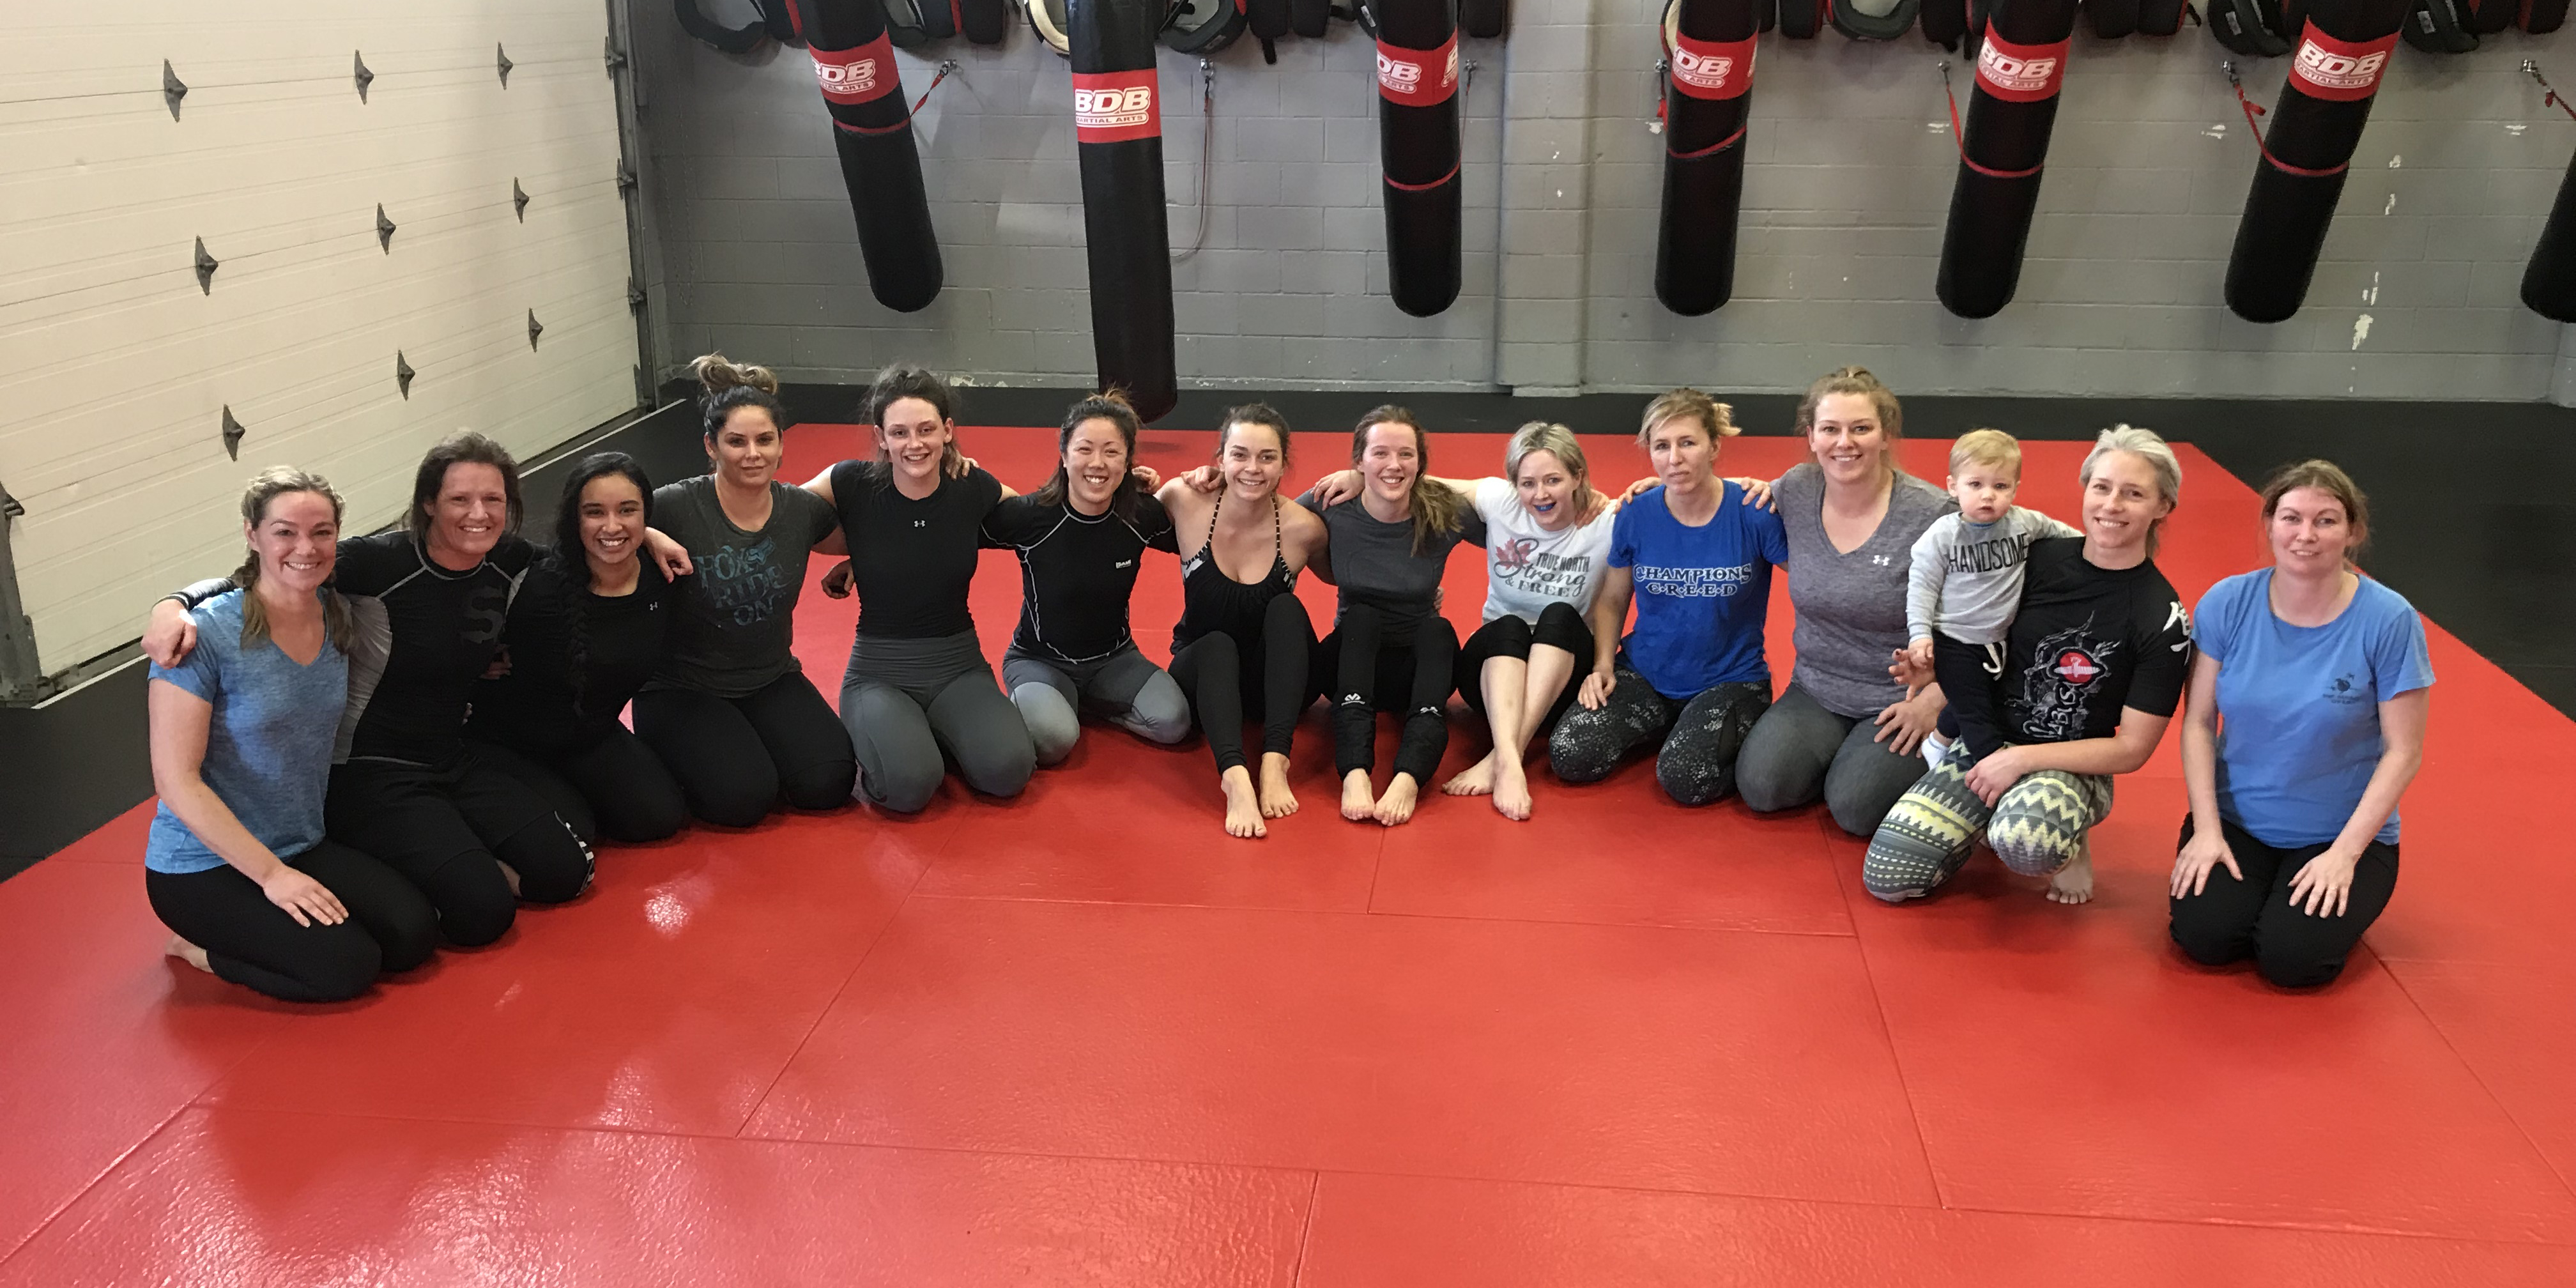 Next Ladies Rolling Session: Sunday, February 10, 2019